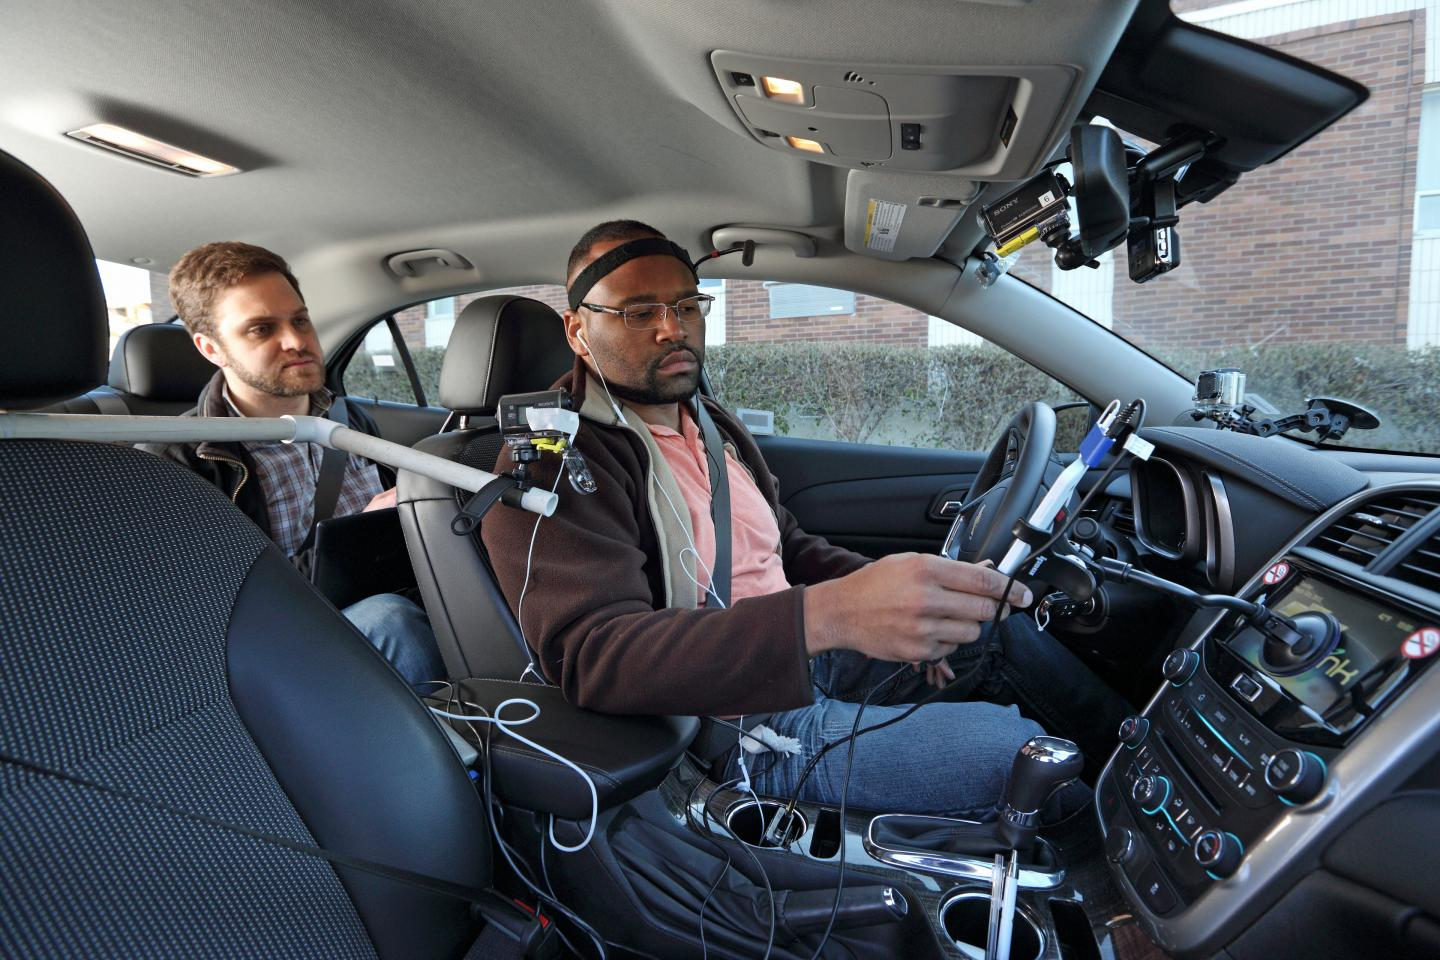 A University of Utah research assistant introduces a participant in new distracted driving studies to special devices designed to gauge mental distraction during road tests. Credit: AAA Foundation for Traffic Safety